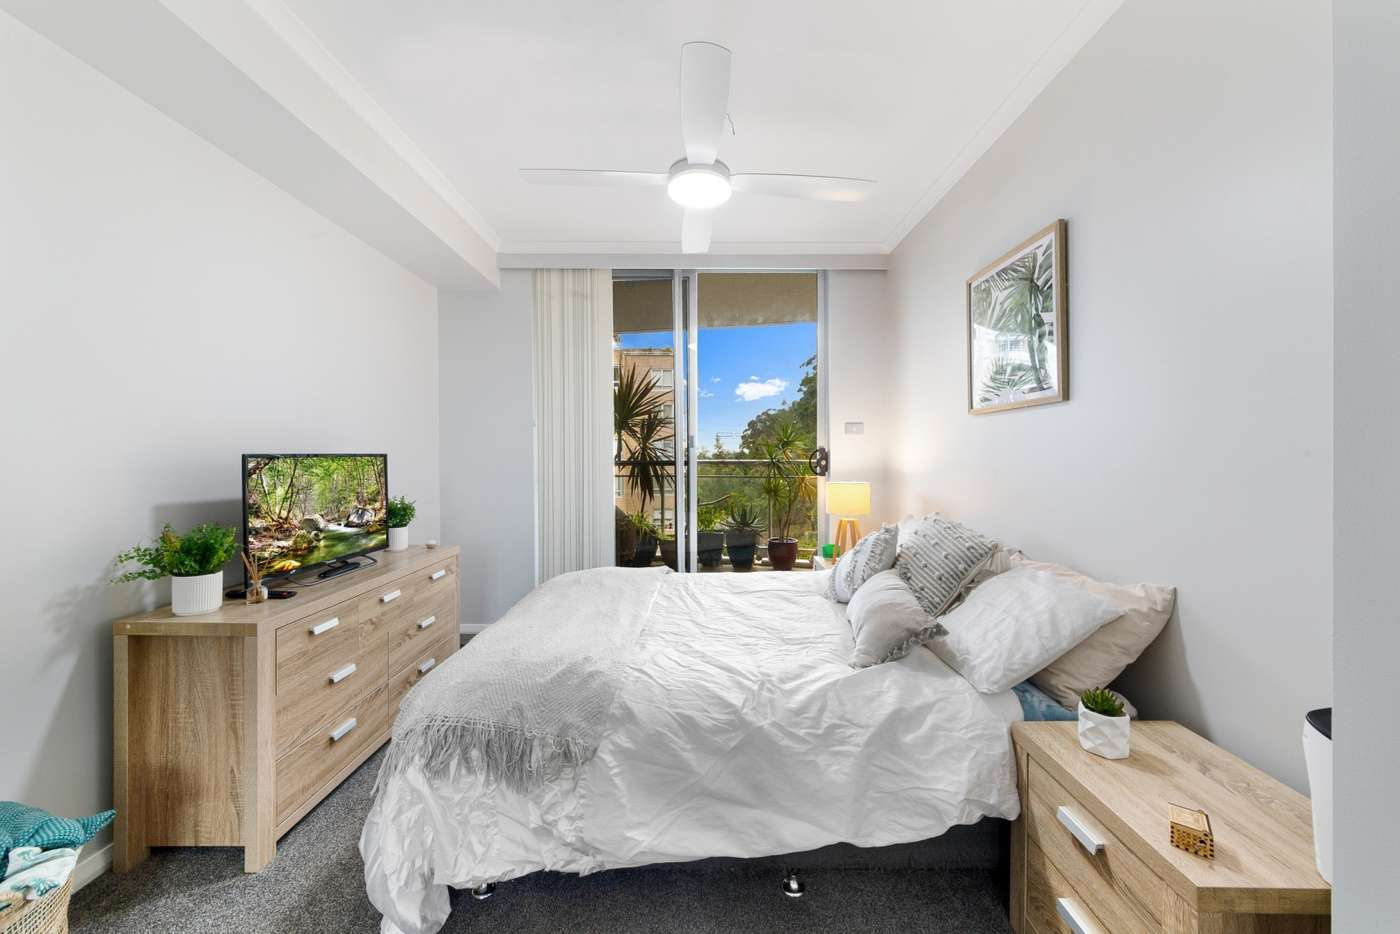 Fifth view of Homely unit listing, 352/80 John Whiteway Drive, Gosford NSW 2250